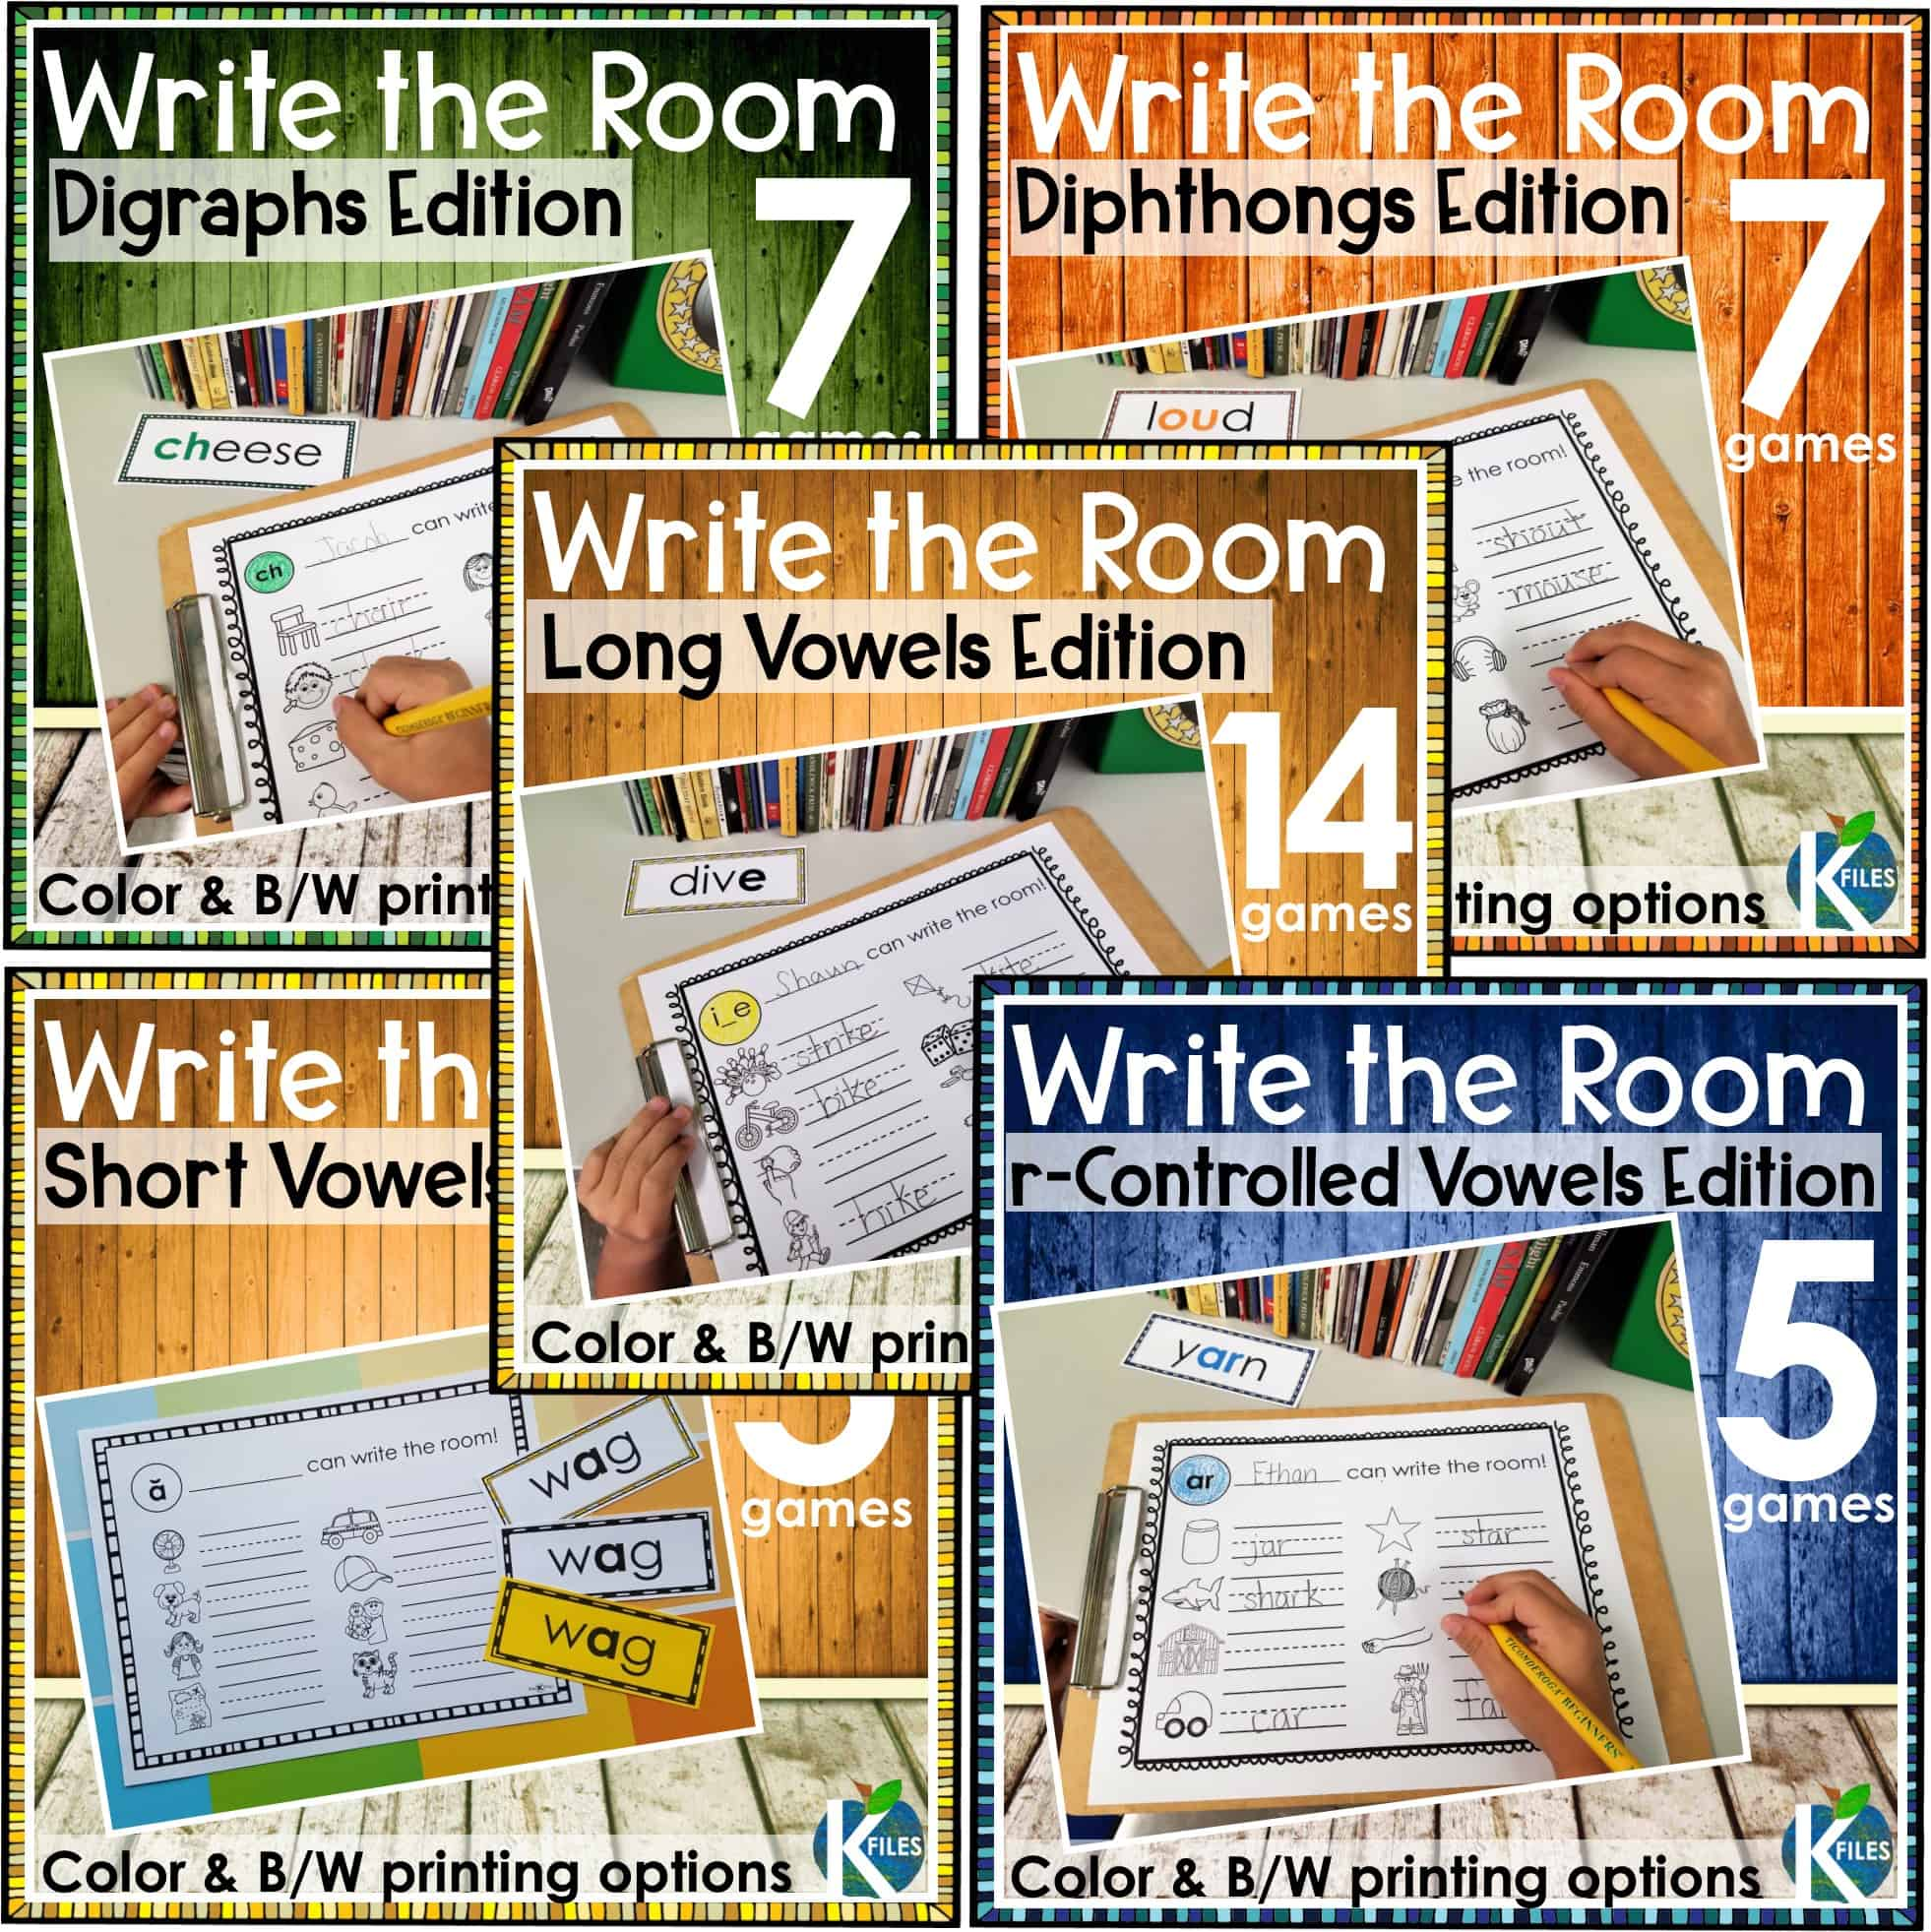 Write the Room: Phonics Edition -a great opportunity to get your students moving as they hunt the room for words that reinforce the current phonics or spelling rule they are studying in their Word Study groups, Words Their Way, or Daily 5 centers. You will see how engaged your students will be. These phonics games will be a great supplement to your spelling program.